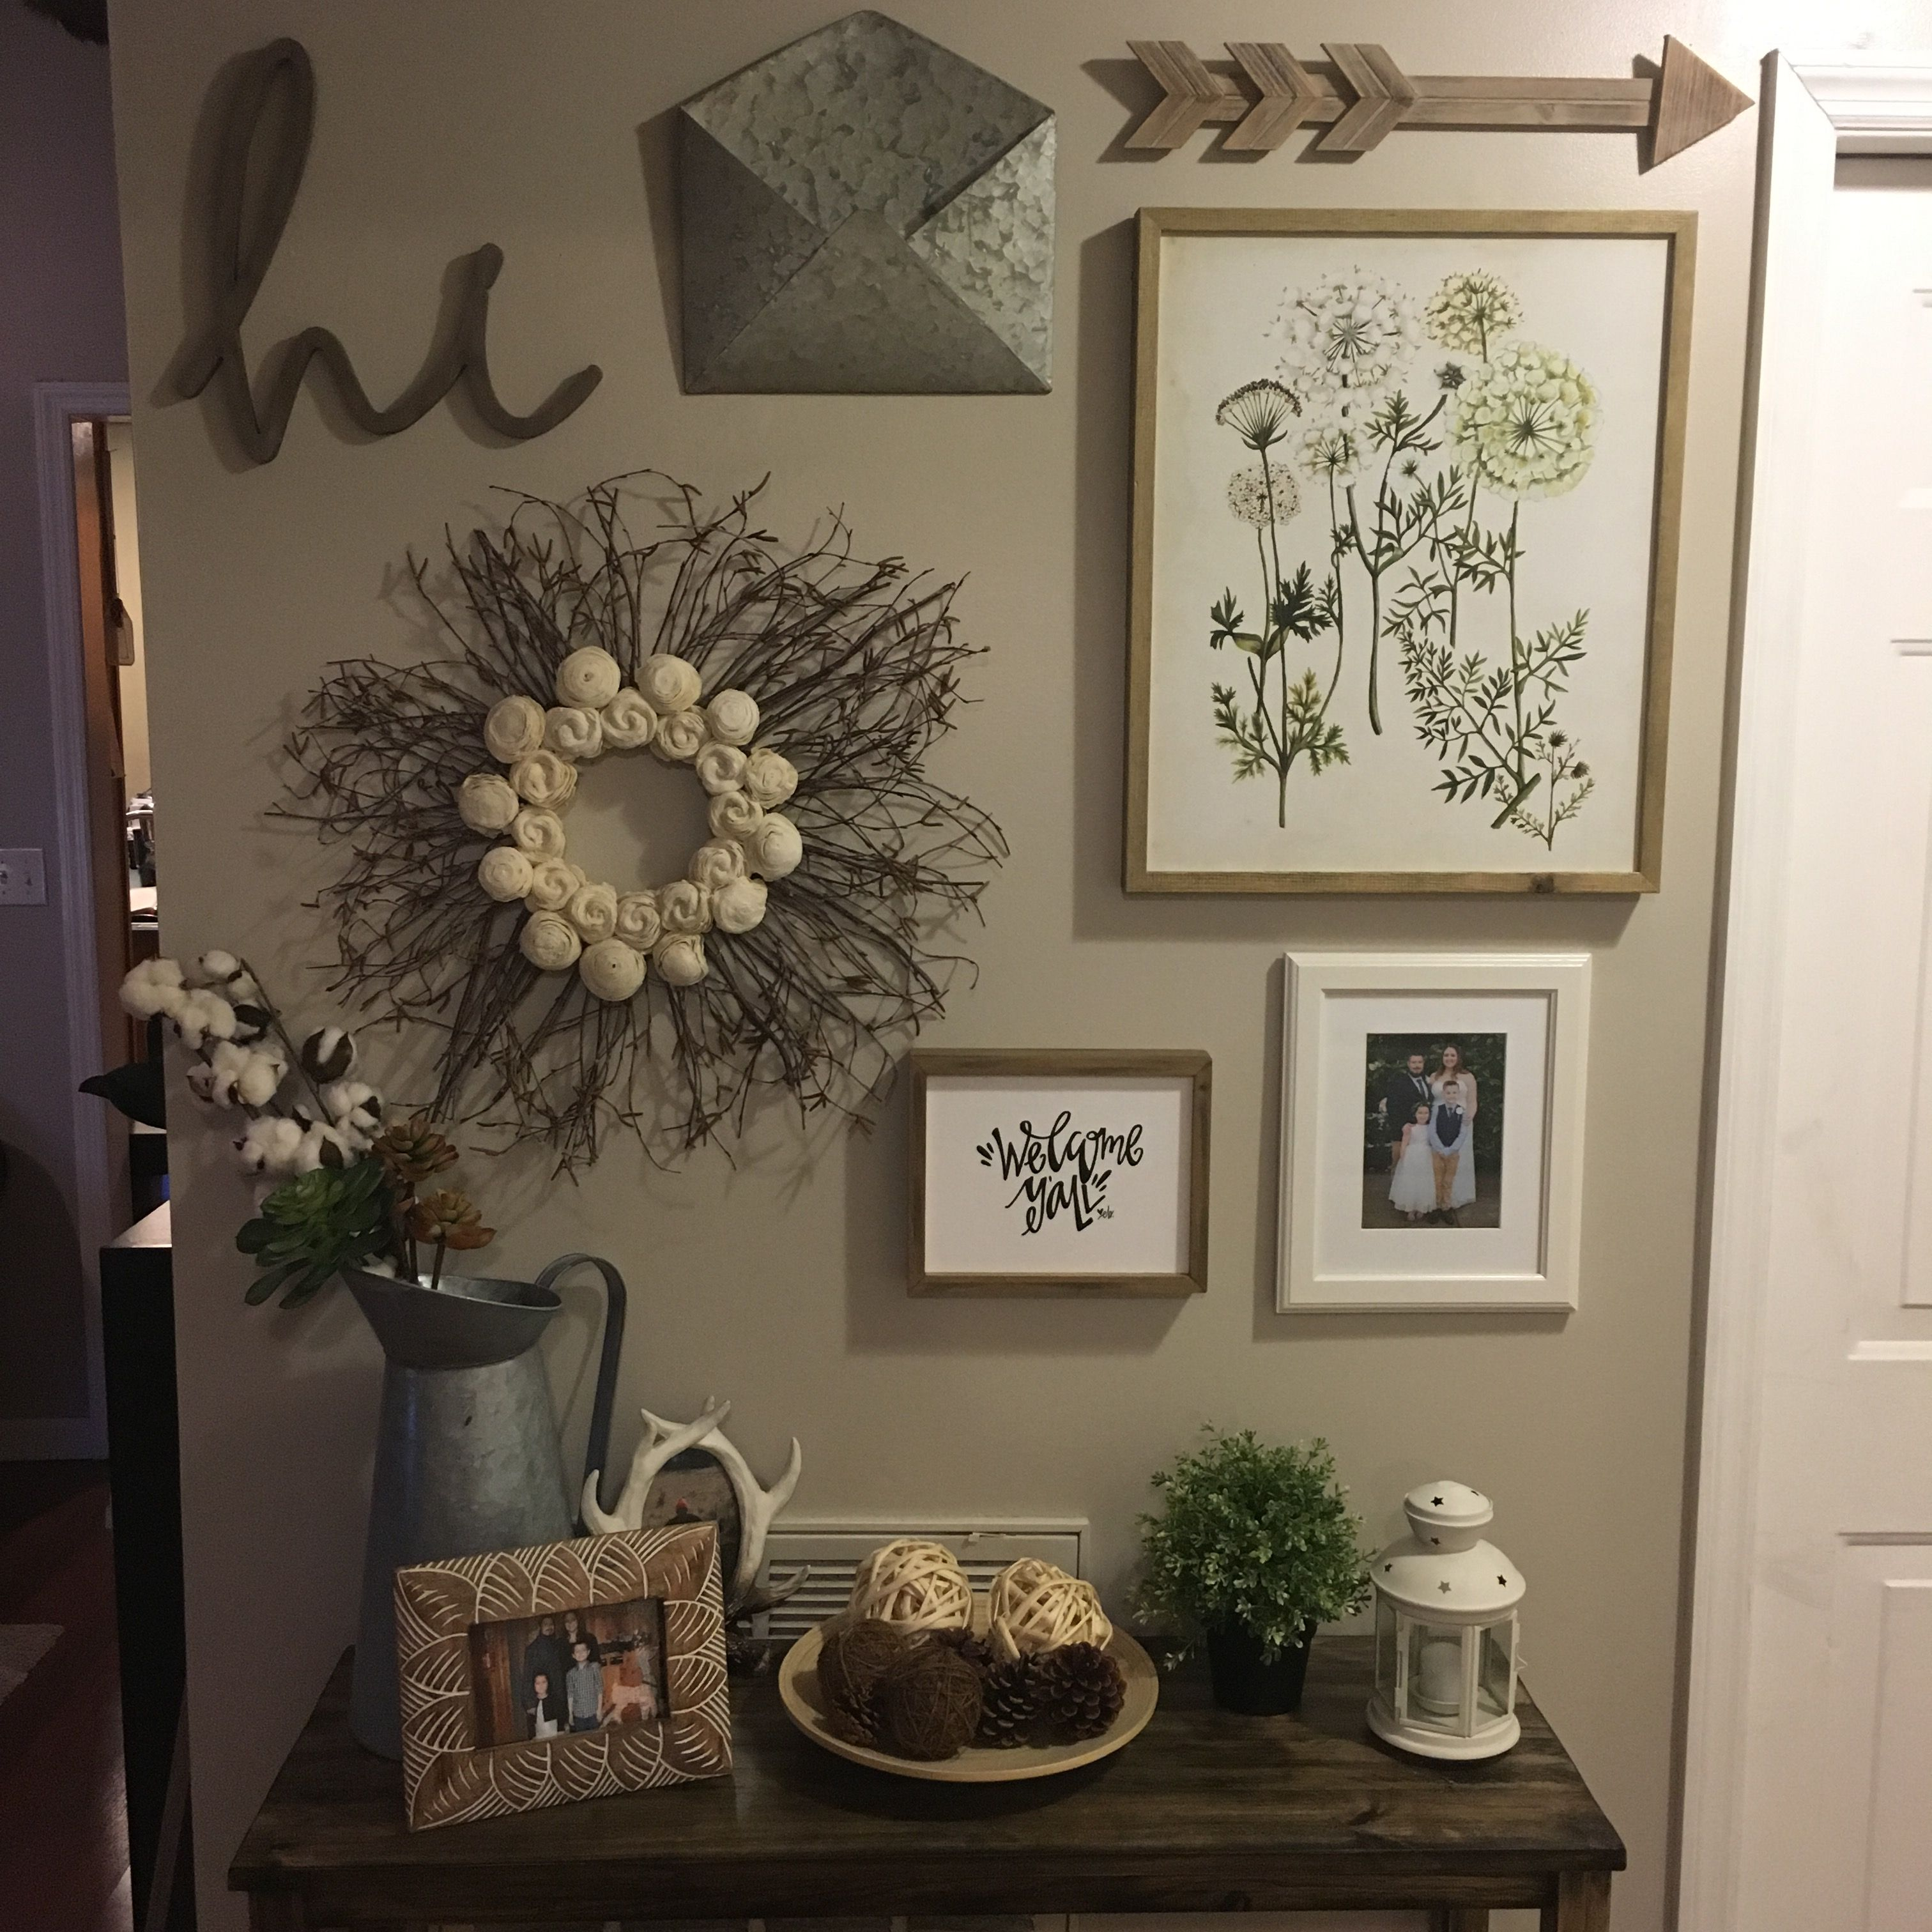 Modern Farmhouse Wall Decor Dining Room Entryway Gallery Wall With A Rustic Farmhouse Theme Most